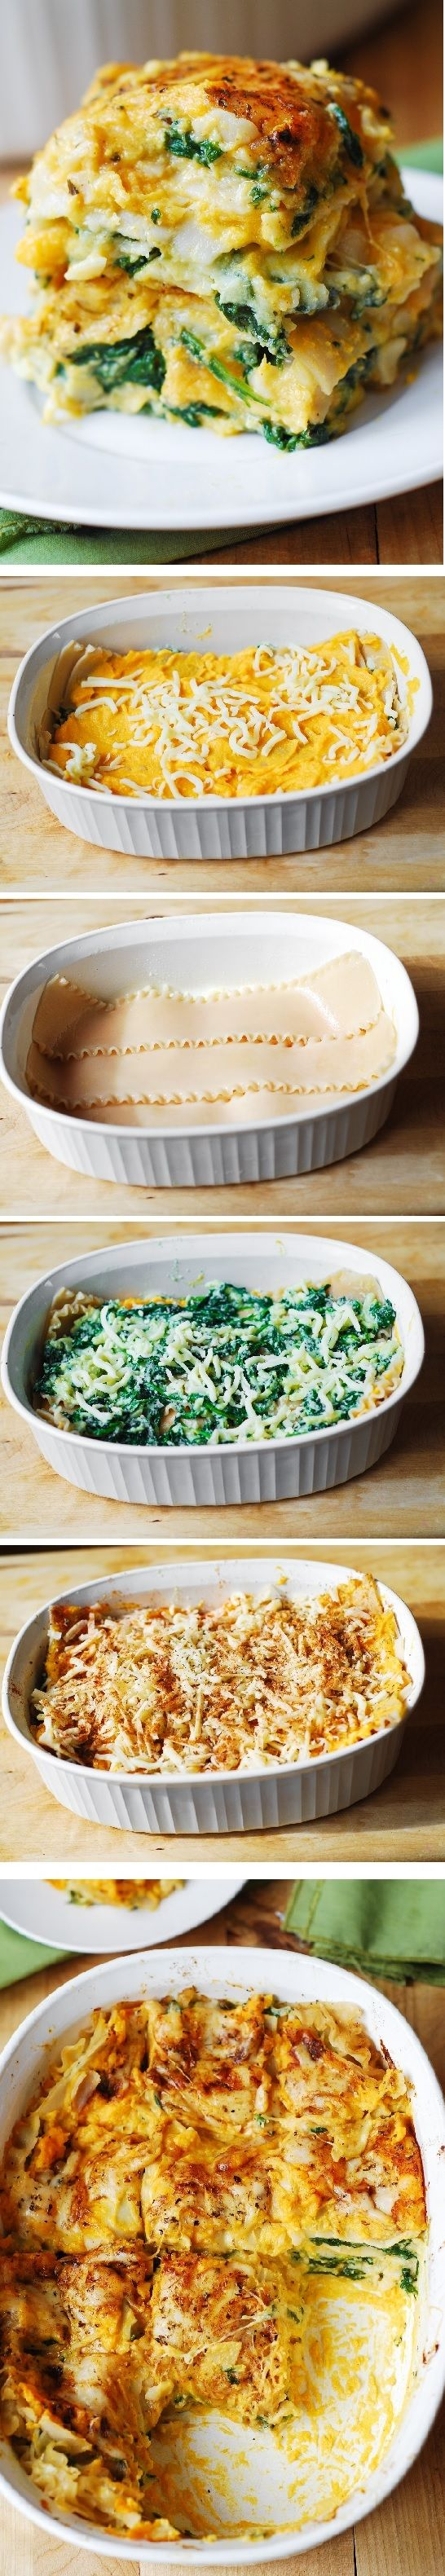 Butternut Squash and Spinach Three Cheese Lasagna combines amazing flavors to create the ultimate Fall & Winter comfort food.